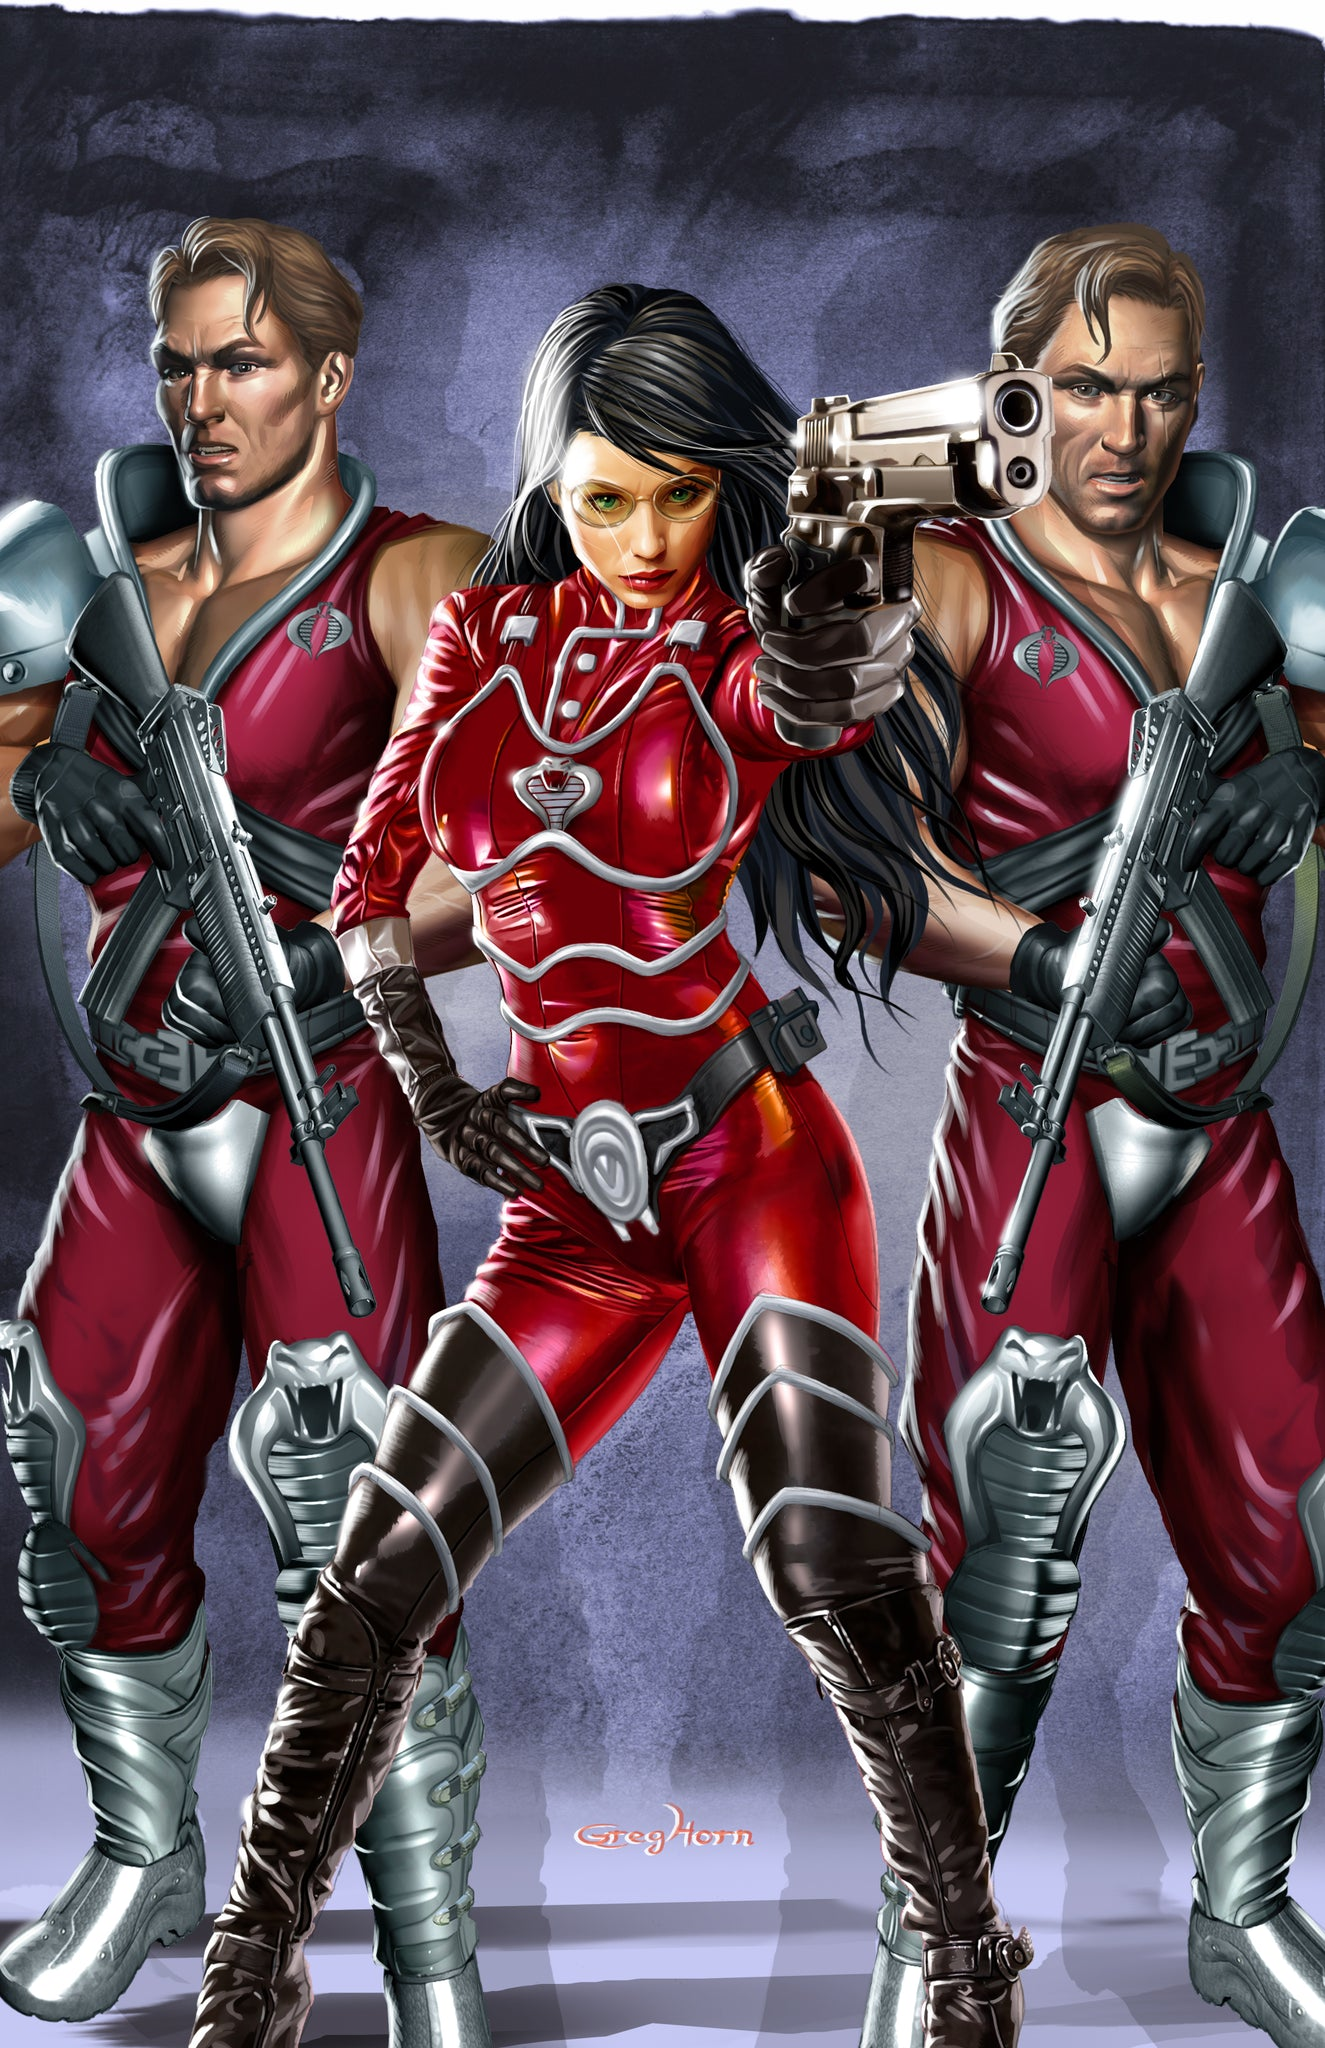 G.I. JOE - Baroness with Xamot and Tomax - high quality 11 x 17 digital print